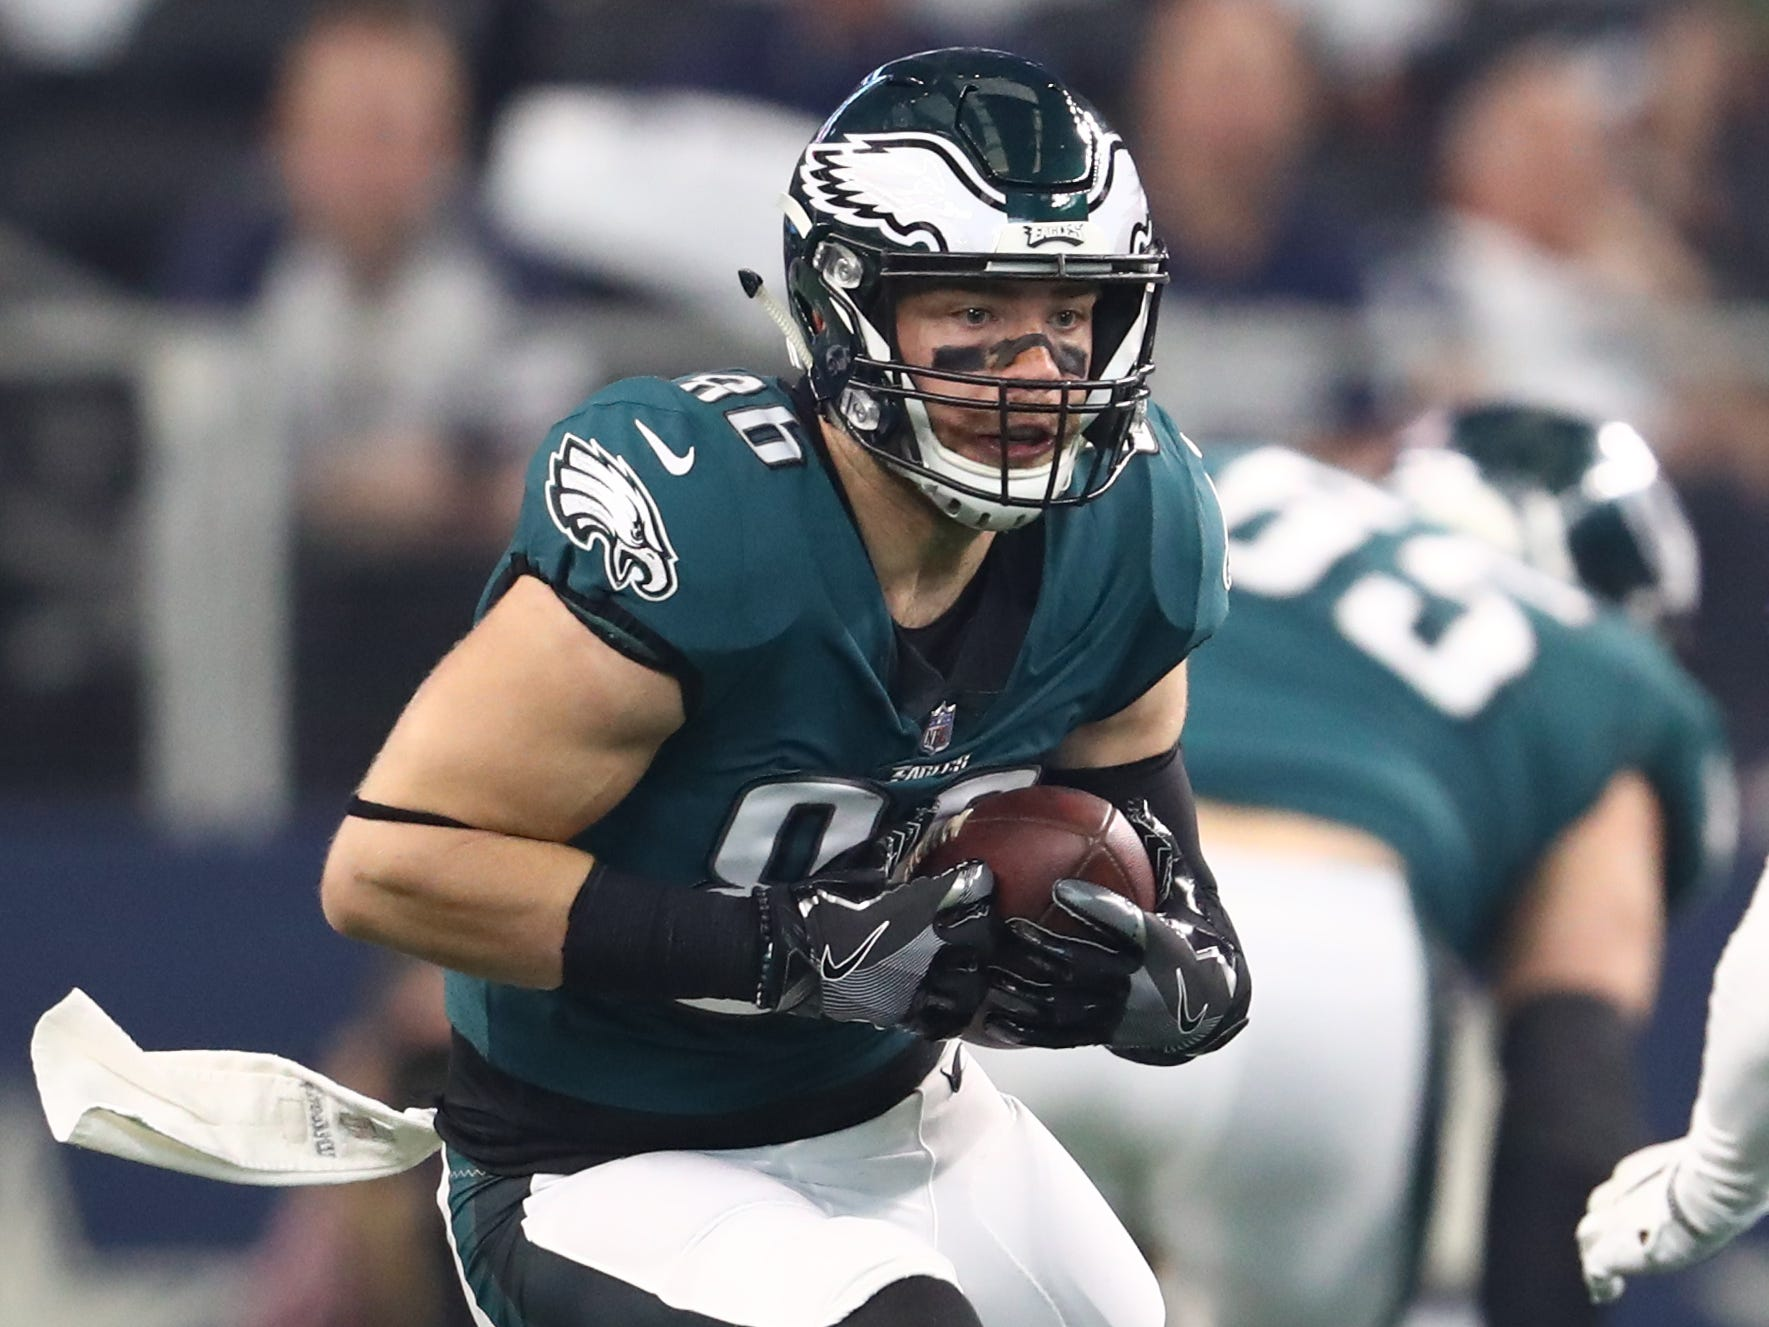 TE - Zach Ertz, Philadelphia Eagles